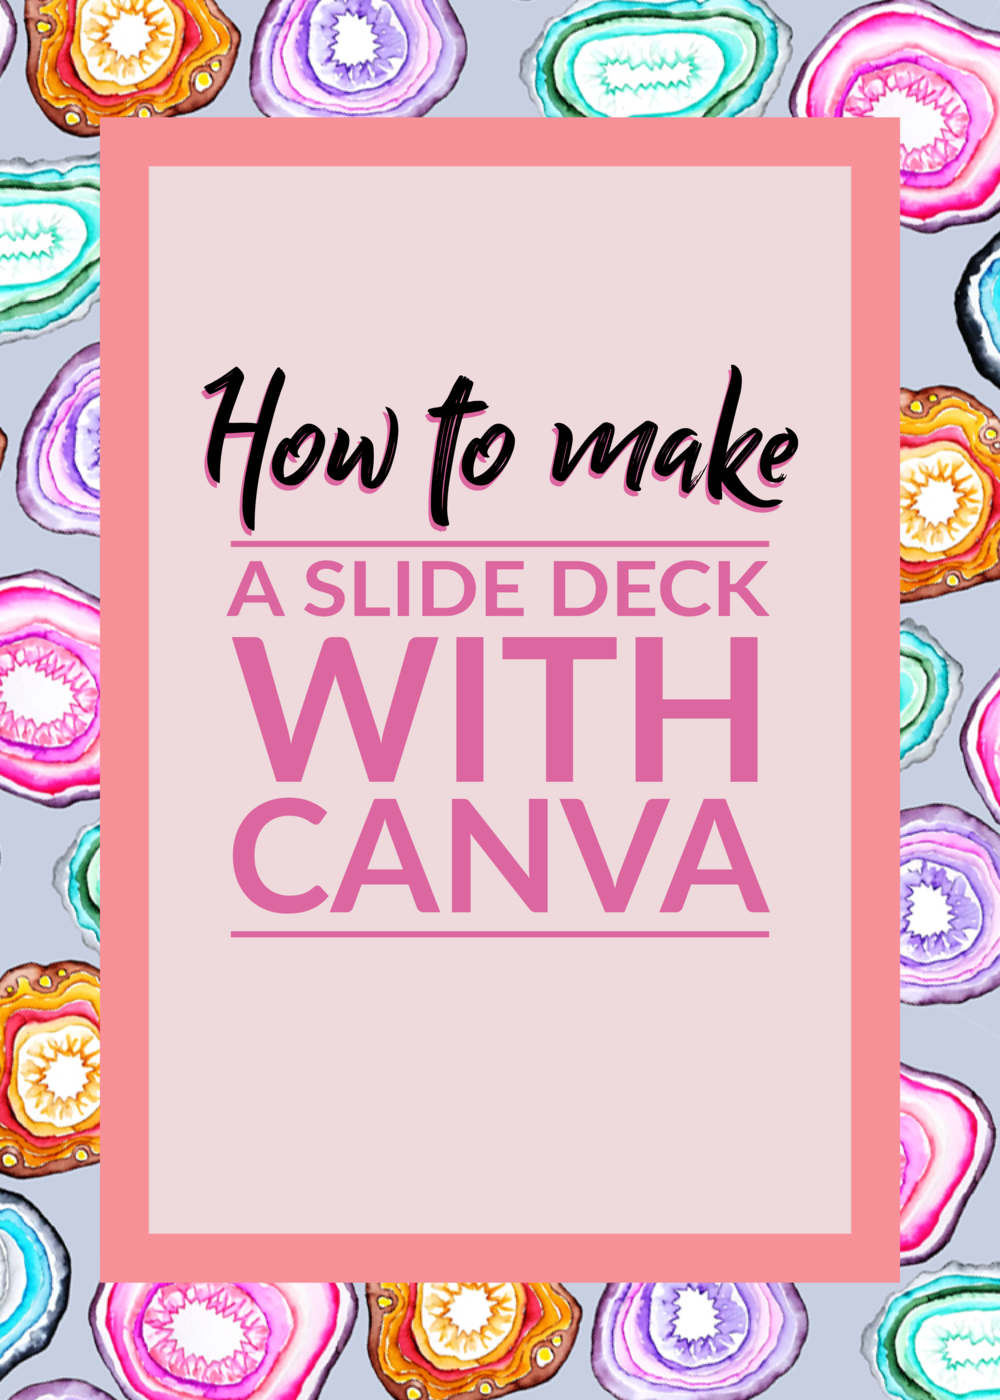 How to make a slide deck with Canva by Making Something Rad